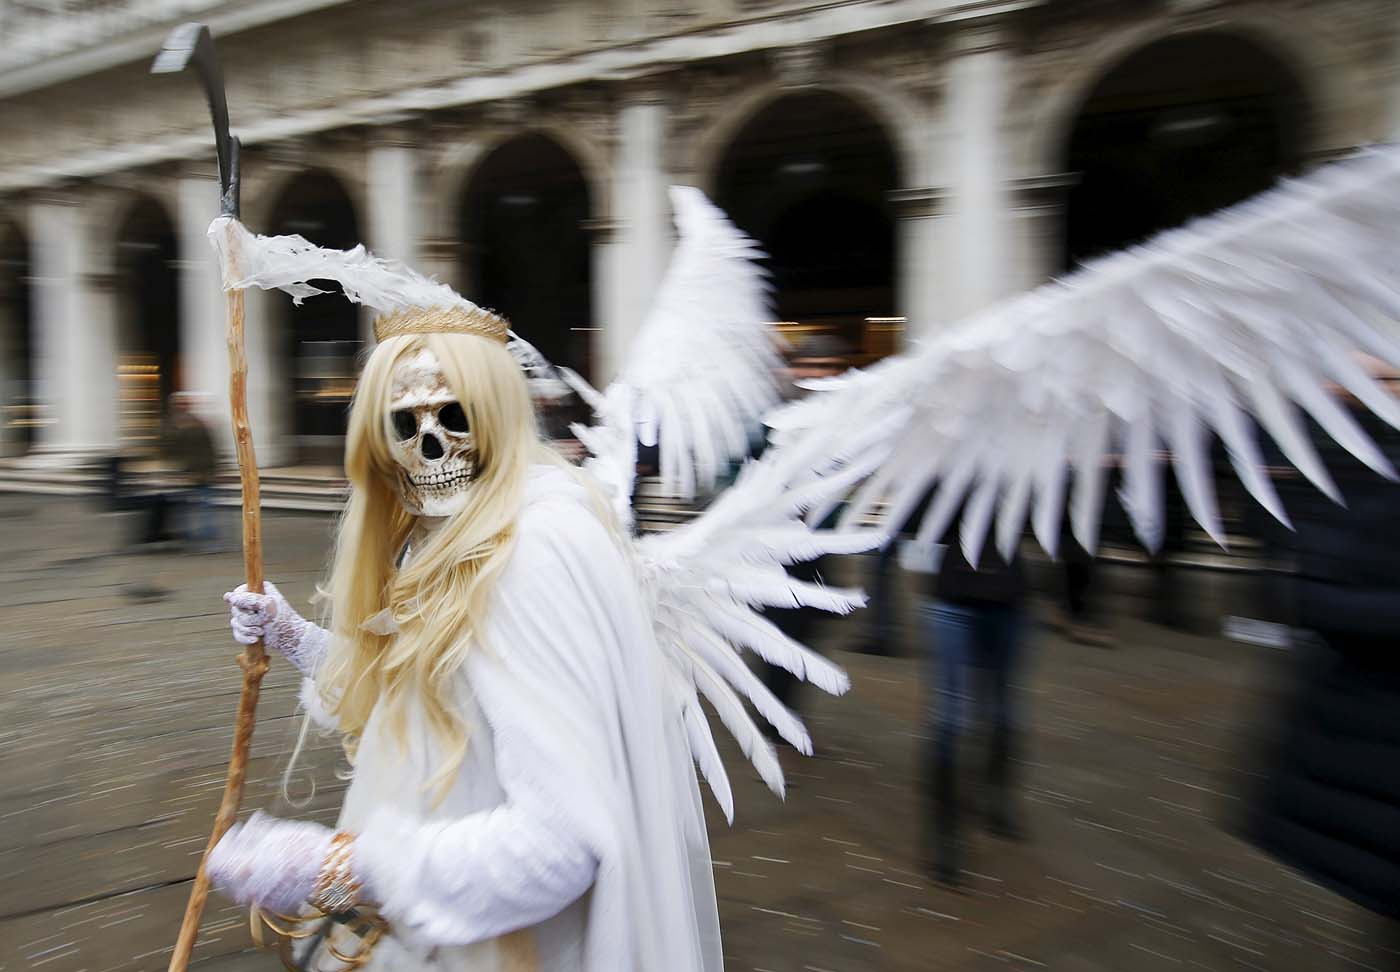 A masked reveller poses in San Marco Piazza during the Venice Carnival, January 30, 2016. REUTERS/Alessandro Bianchi